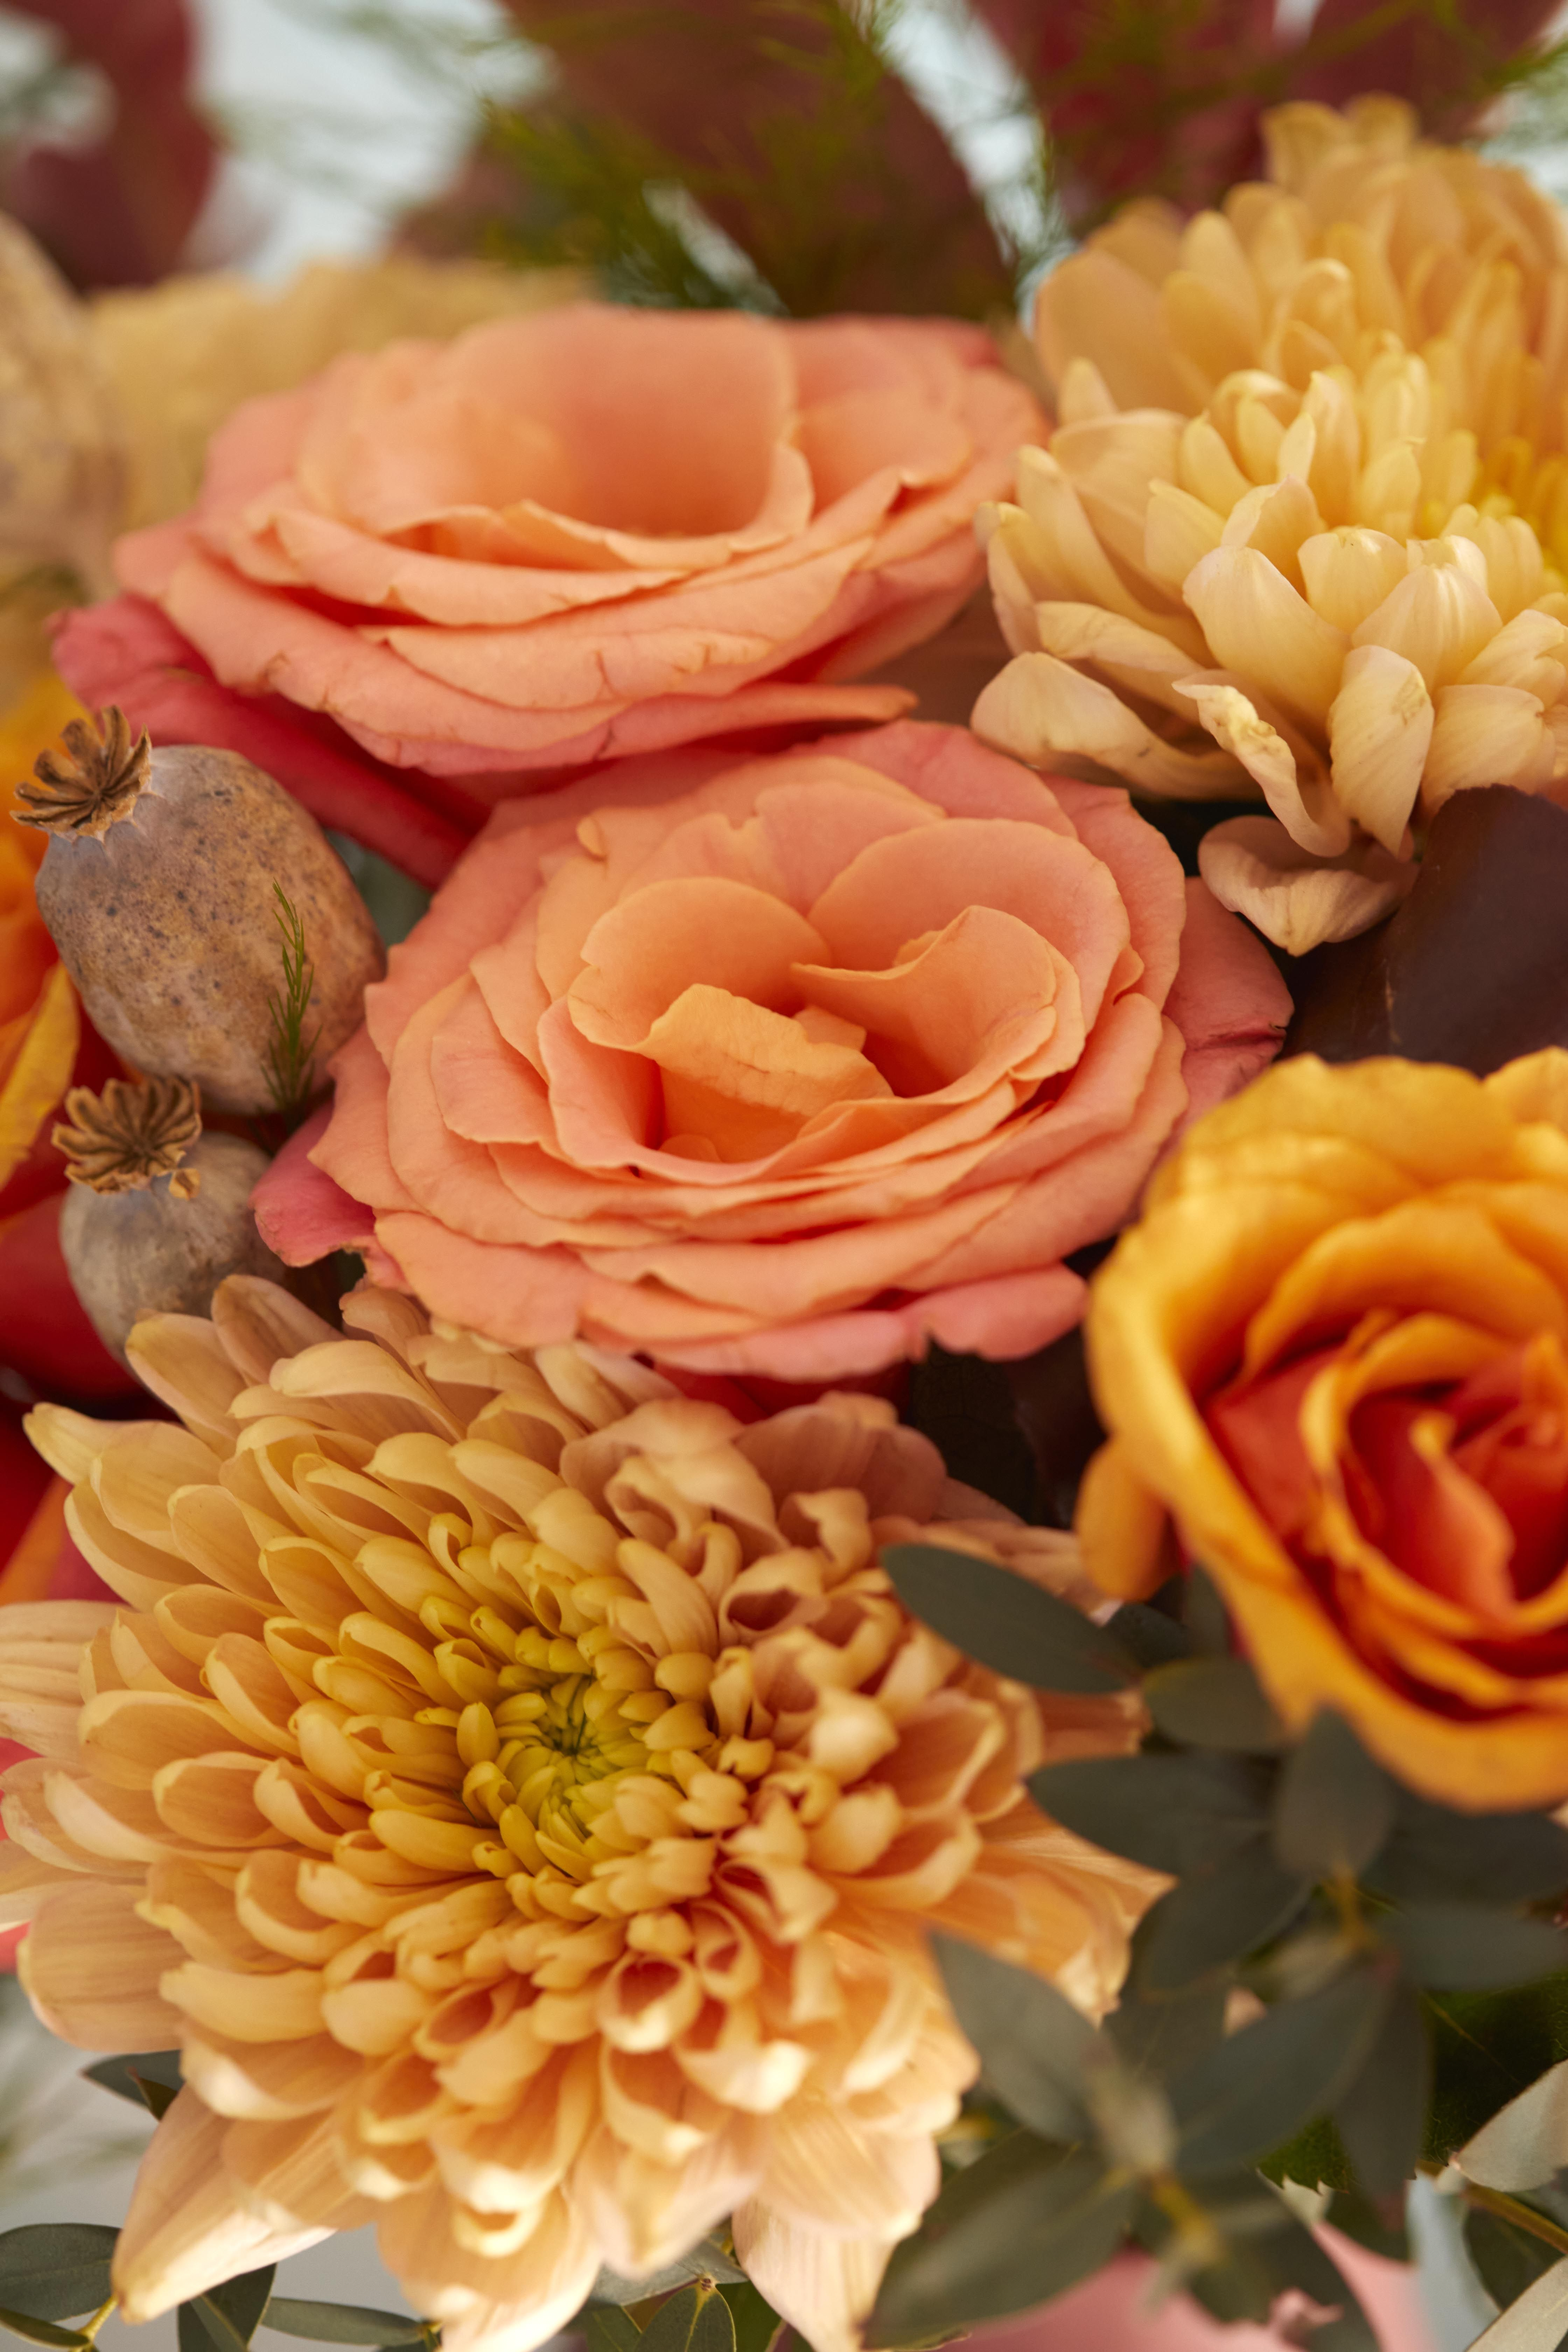 Autumn Flowers Ombre Roses And Autumn Fluffy Chrysanthemums In 2020 Fall Flowers Flowers Bloom And Wild